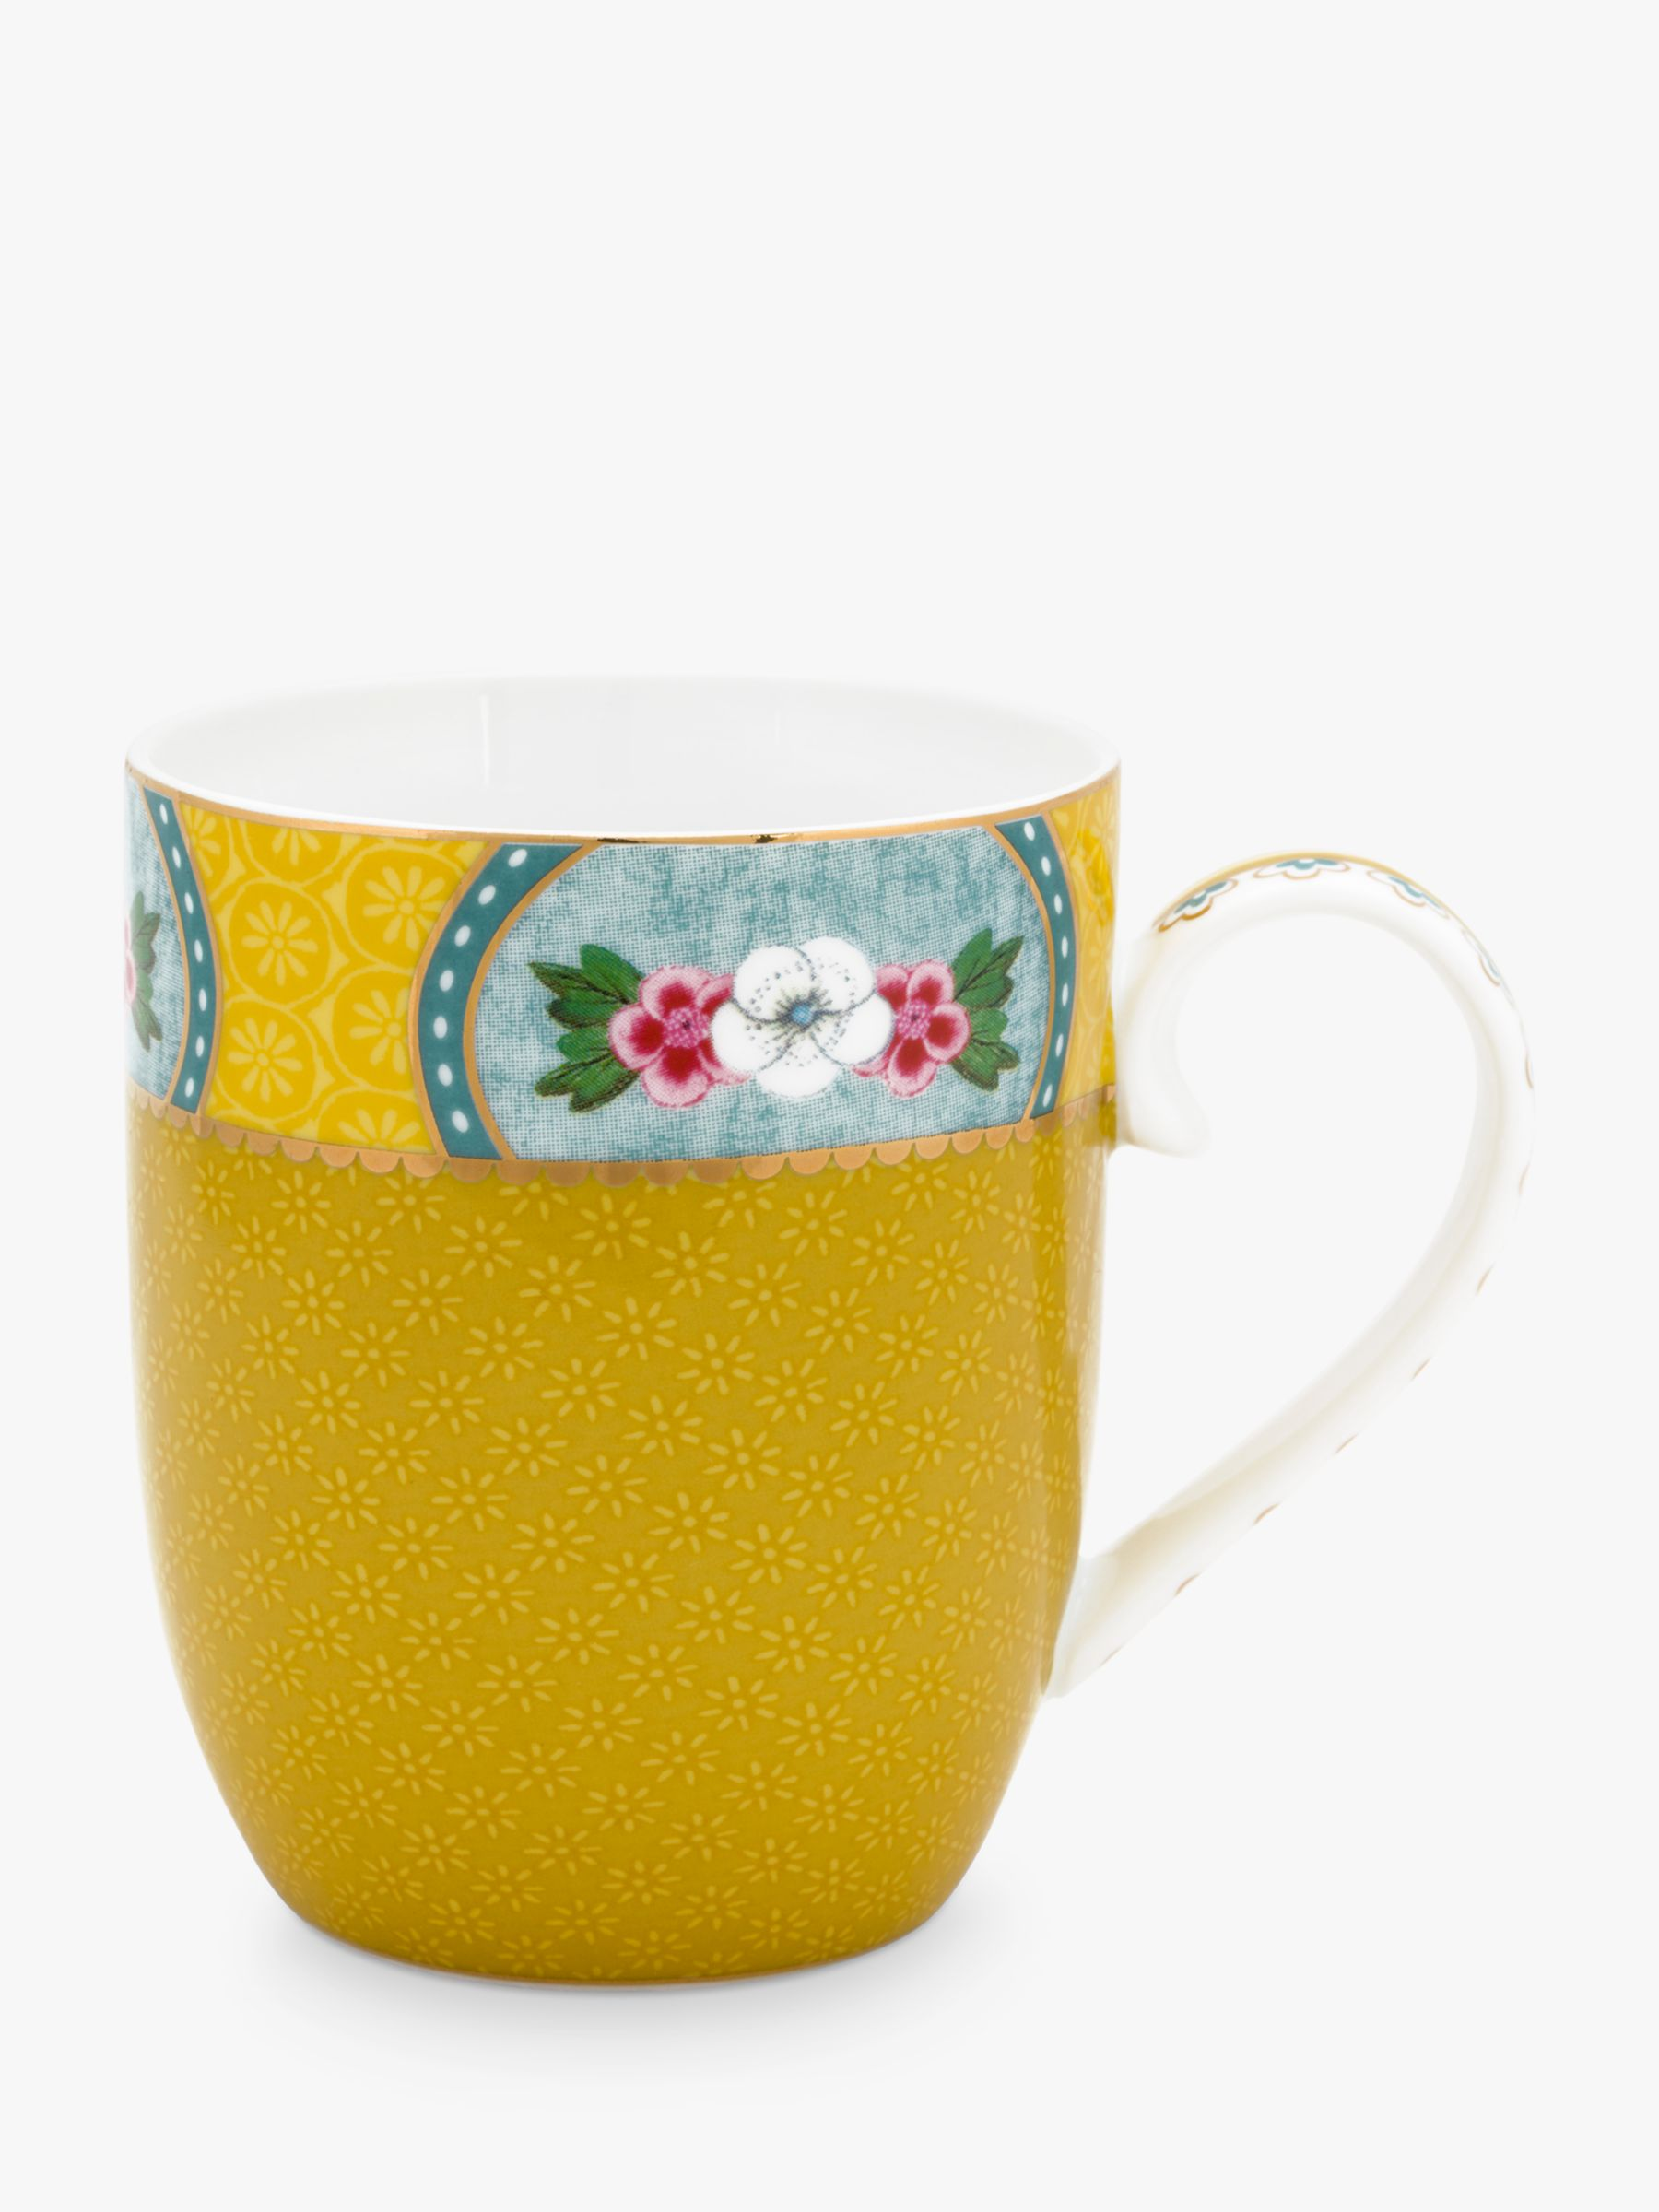 PiP Studio PiP Studio Blushing Birds Small Mug, 145ml